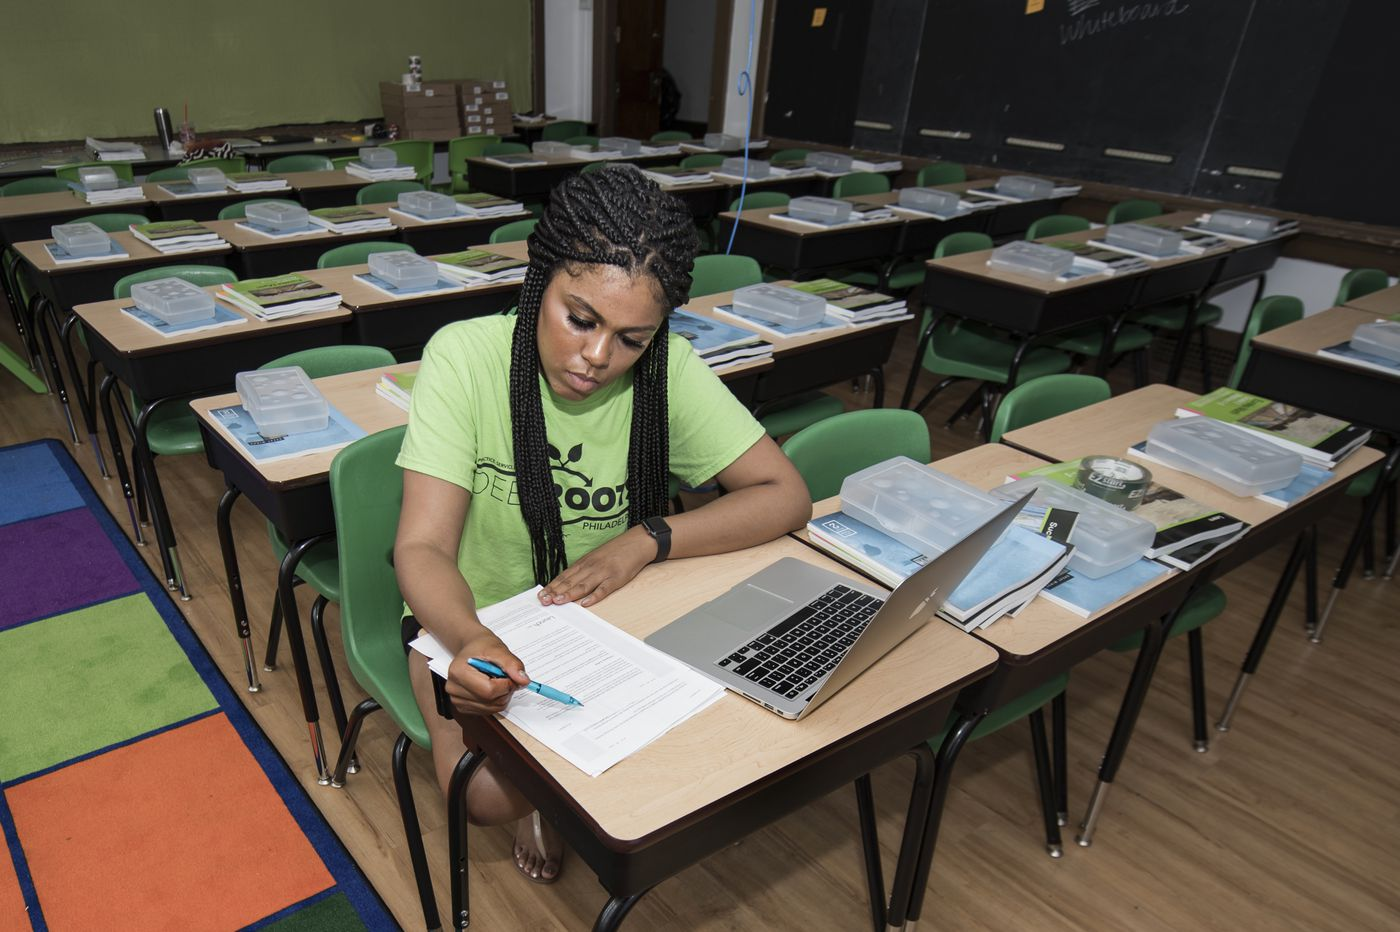 For first time in nearly 10 years, new charter operator opens school in Philly